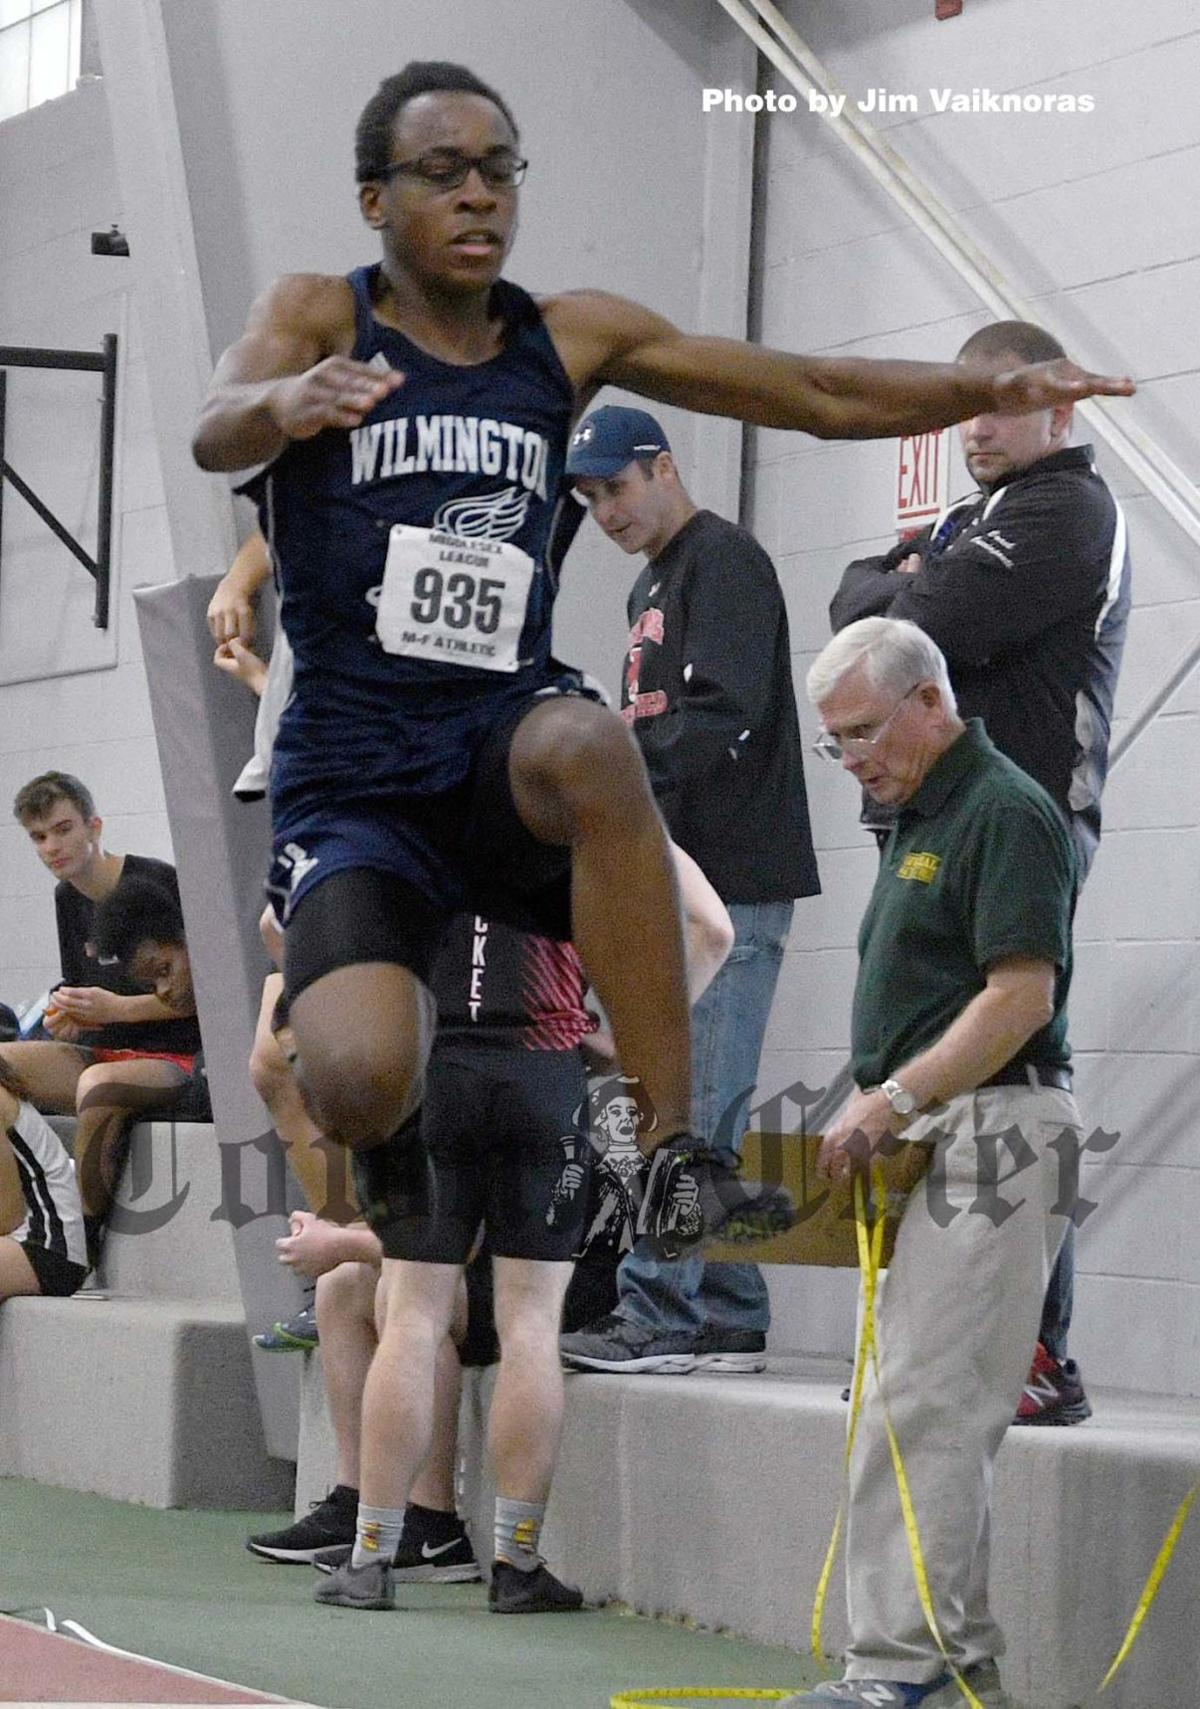 Wilmington's Jeandre Abel competes in the long jump